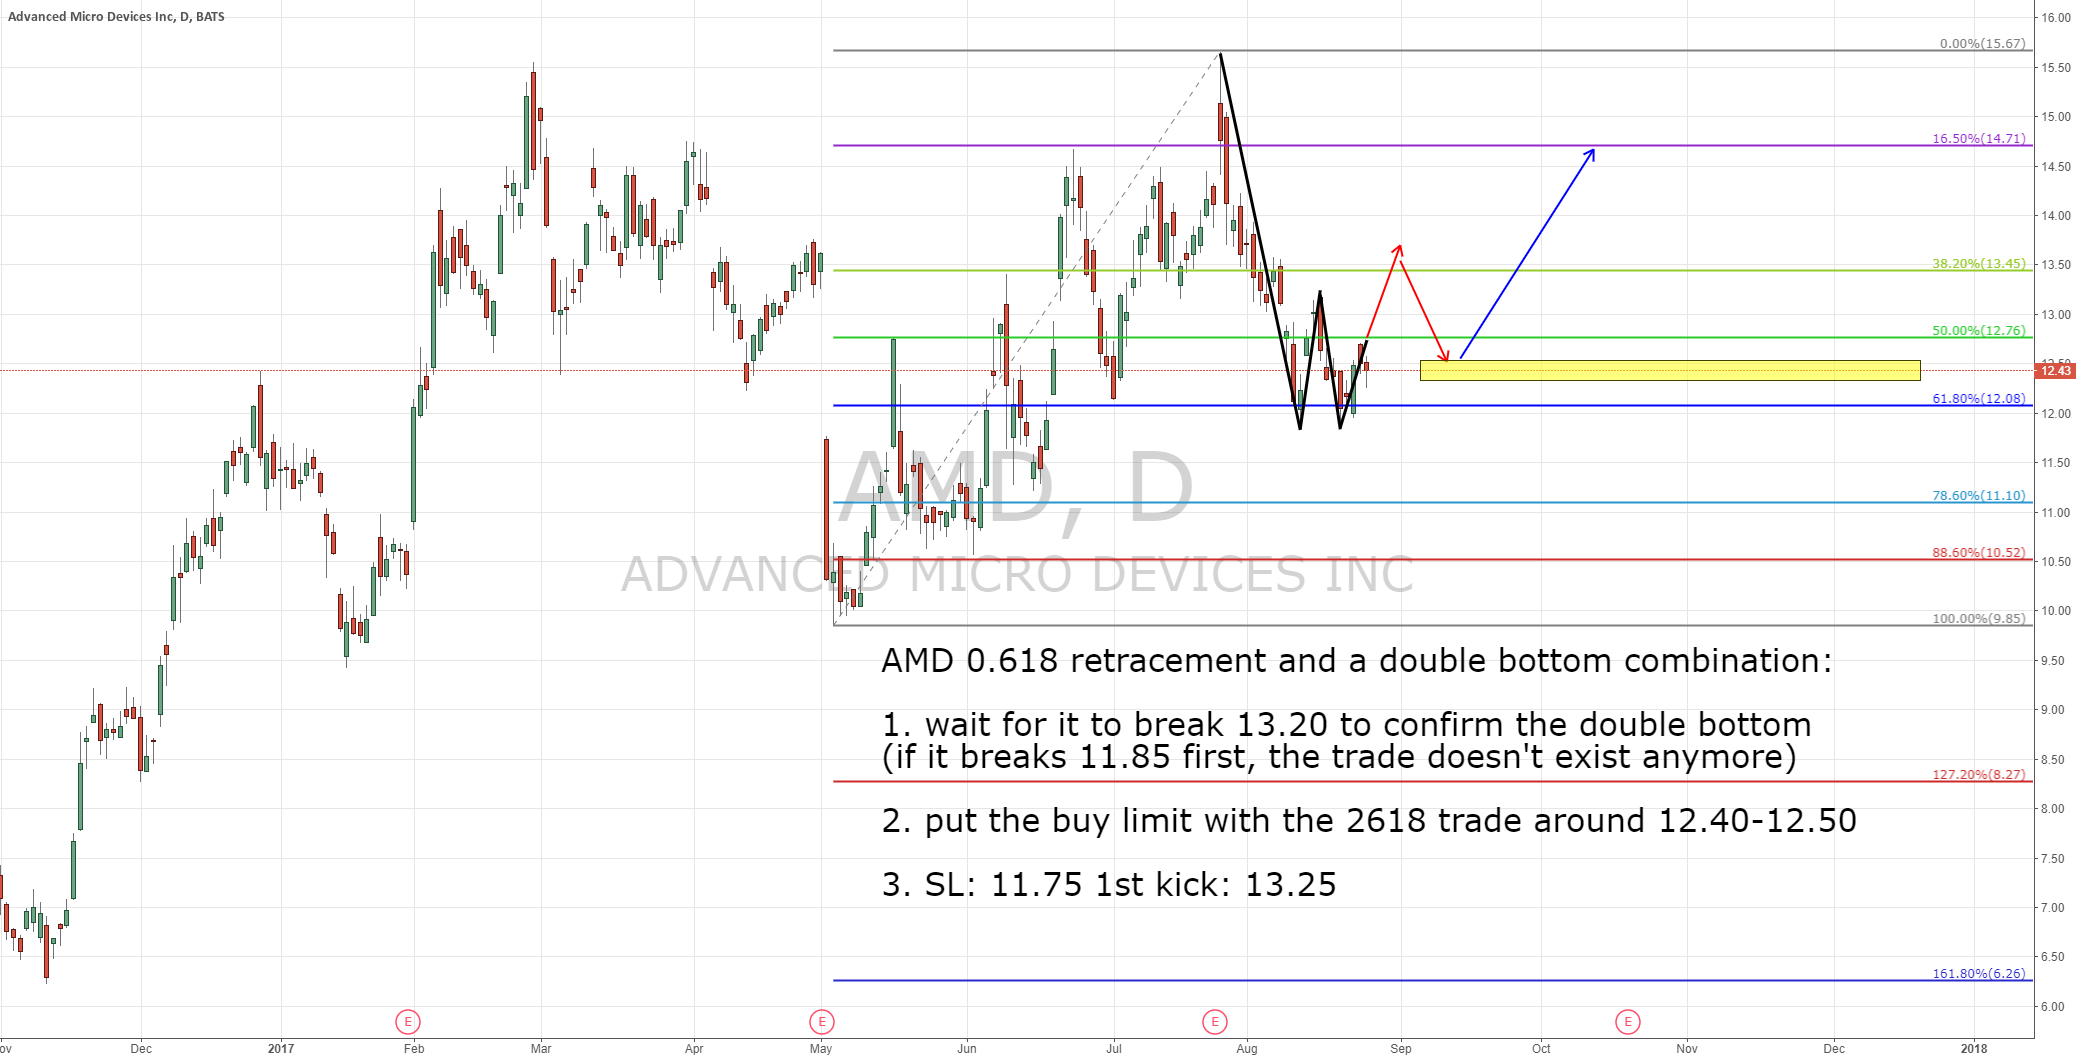 AMD, 0.618 retracement and a potential double bottom